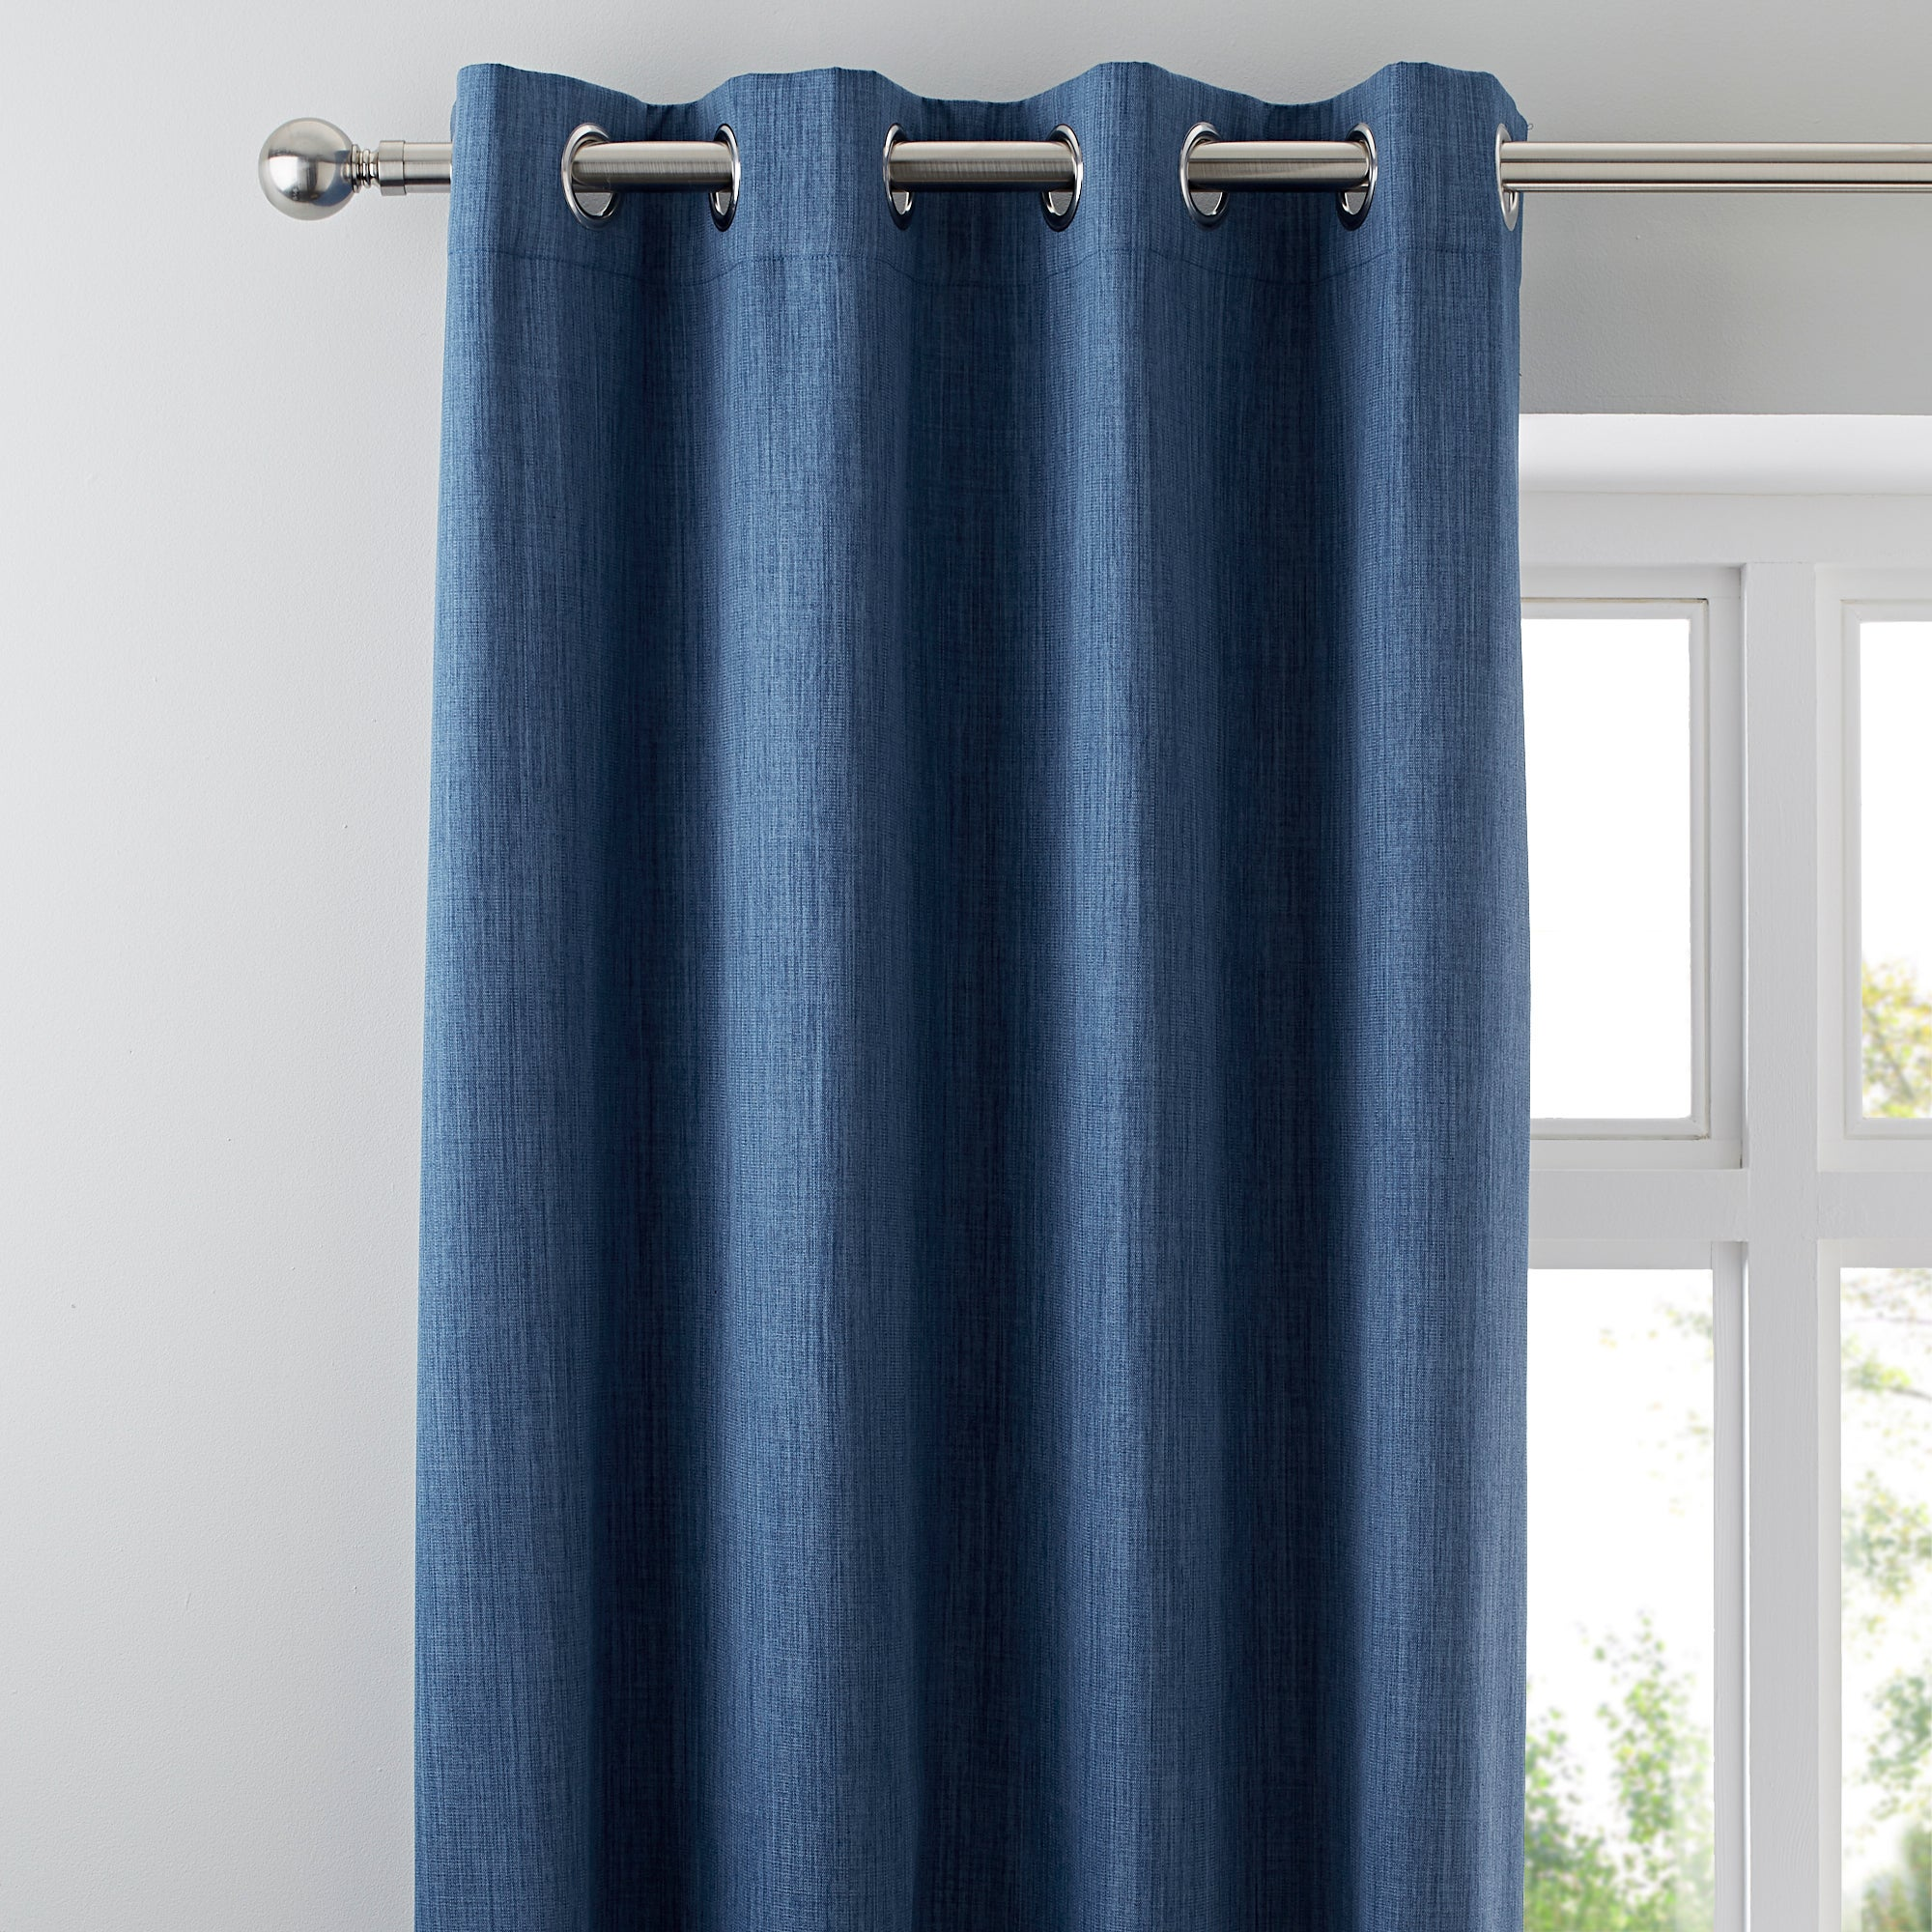 Waters and Noble Blue Solar Blackout Eyelet Curtains